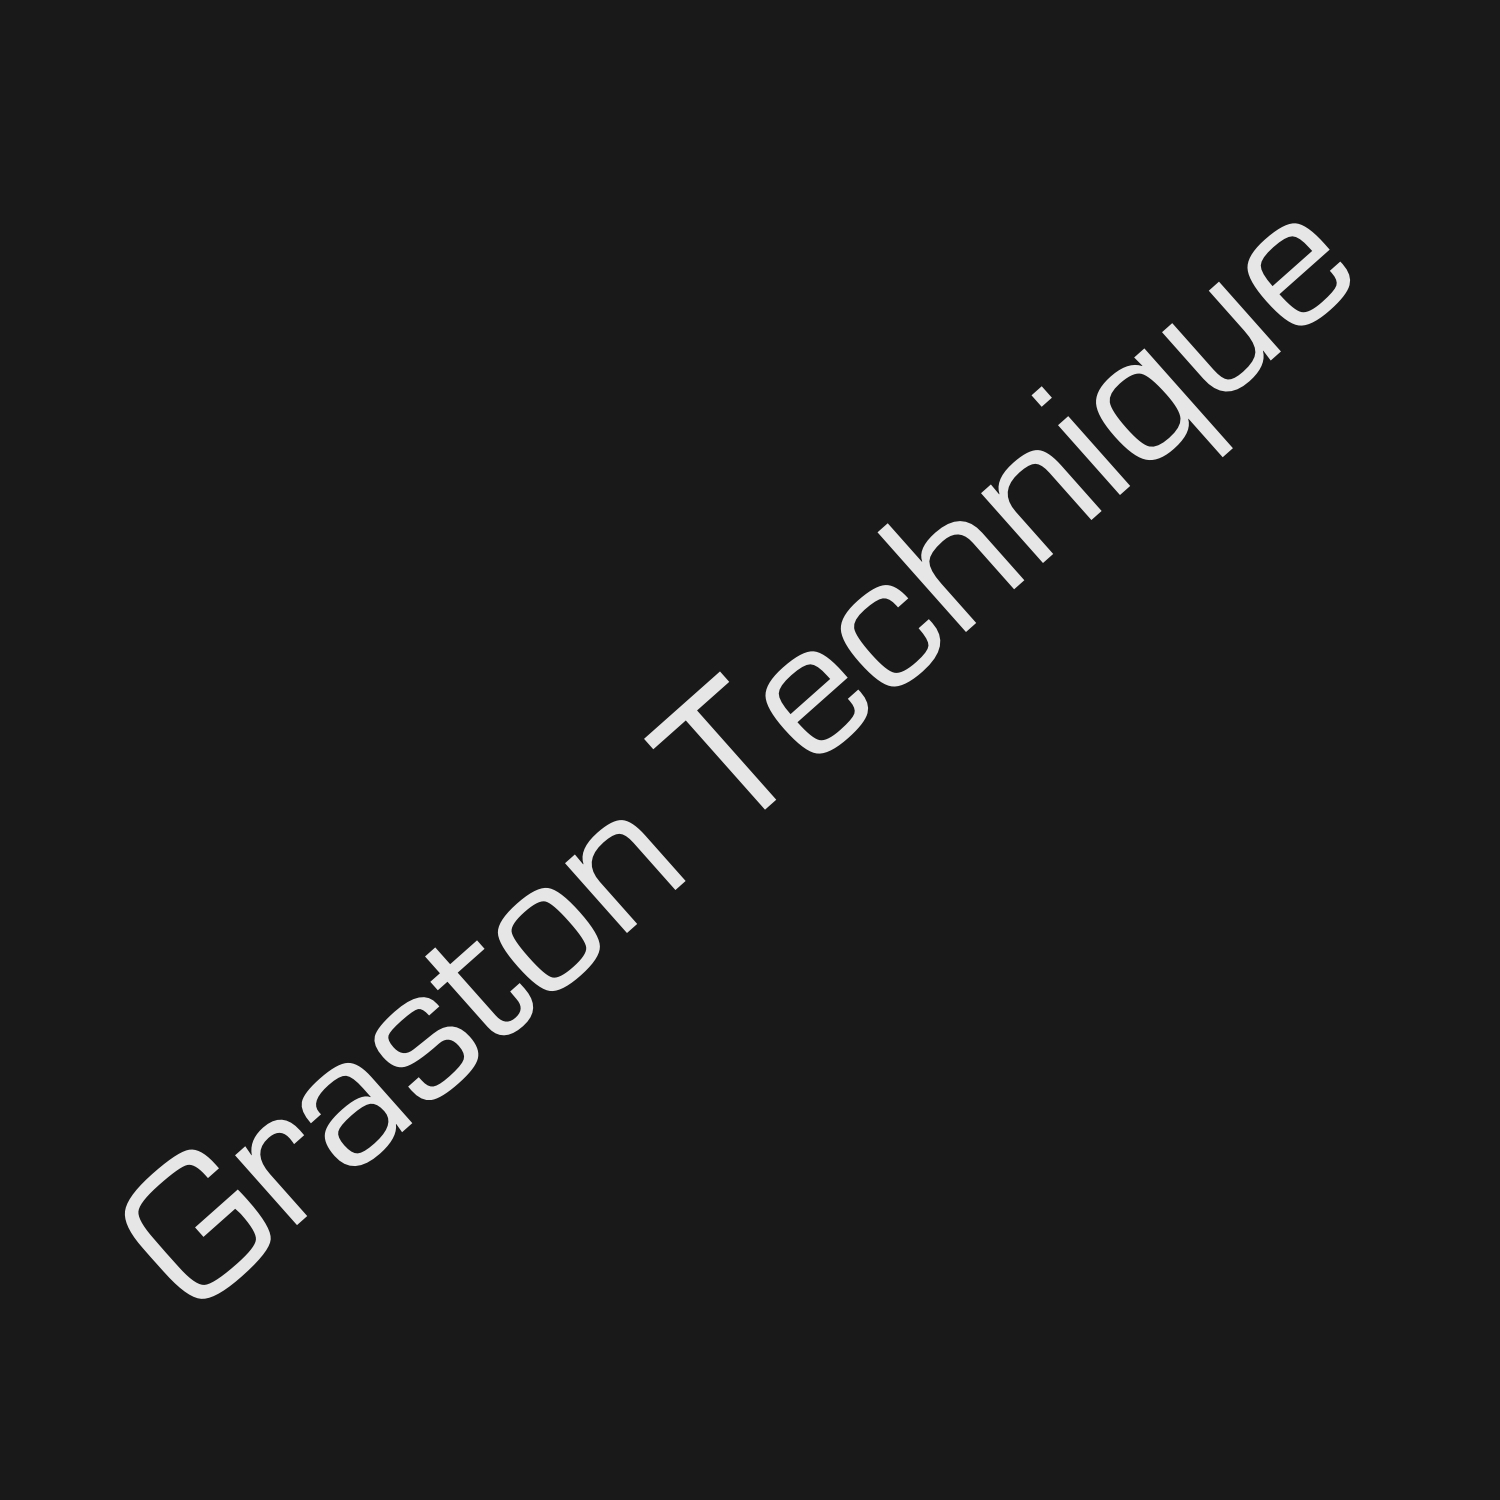 Graston Technique.jpeg